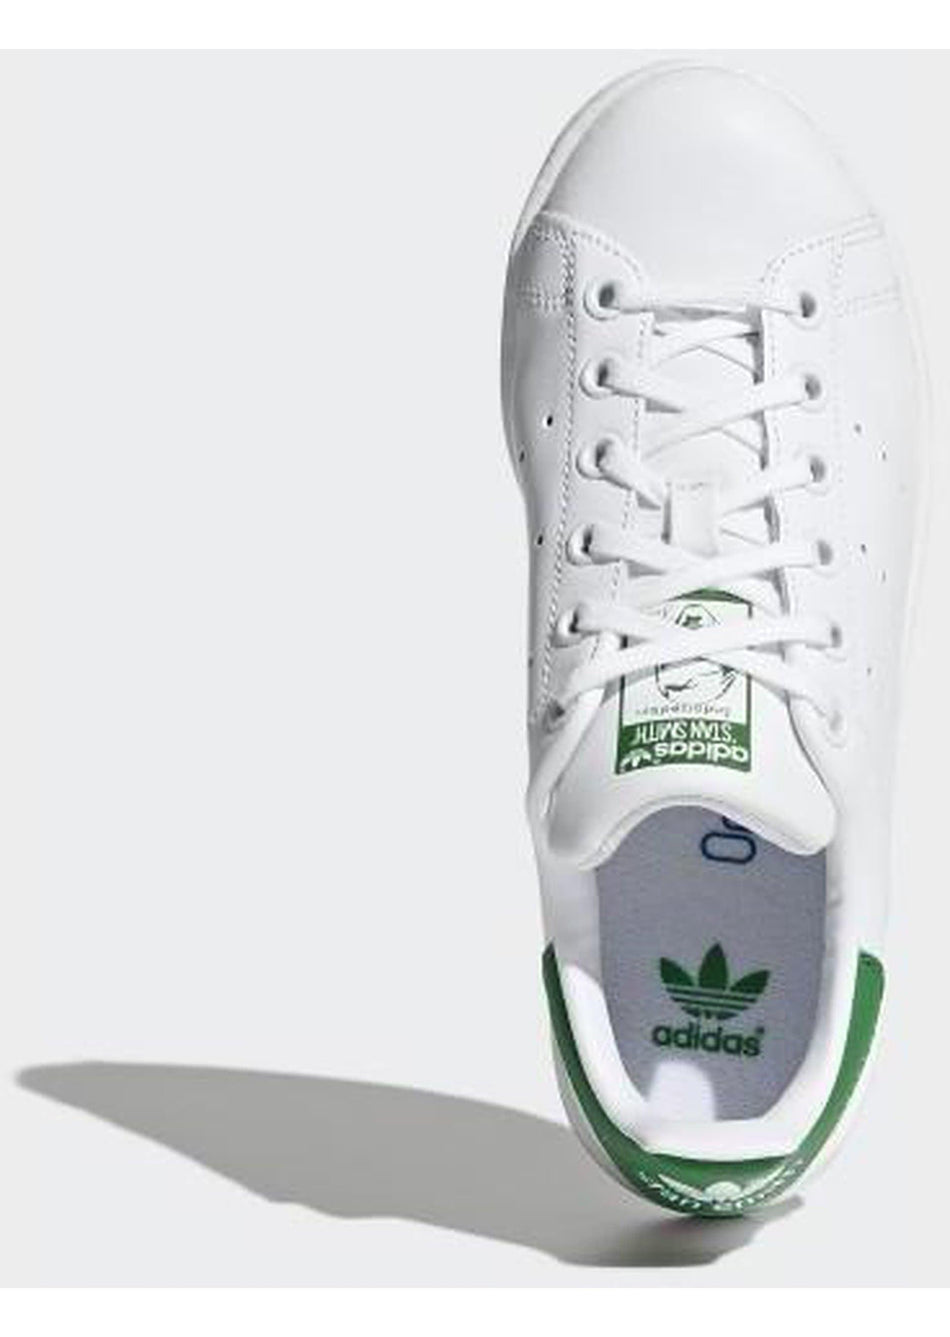 scarpe stan smith ADIDAS - Vittorio Citro Boutique